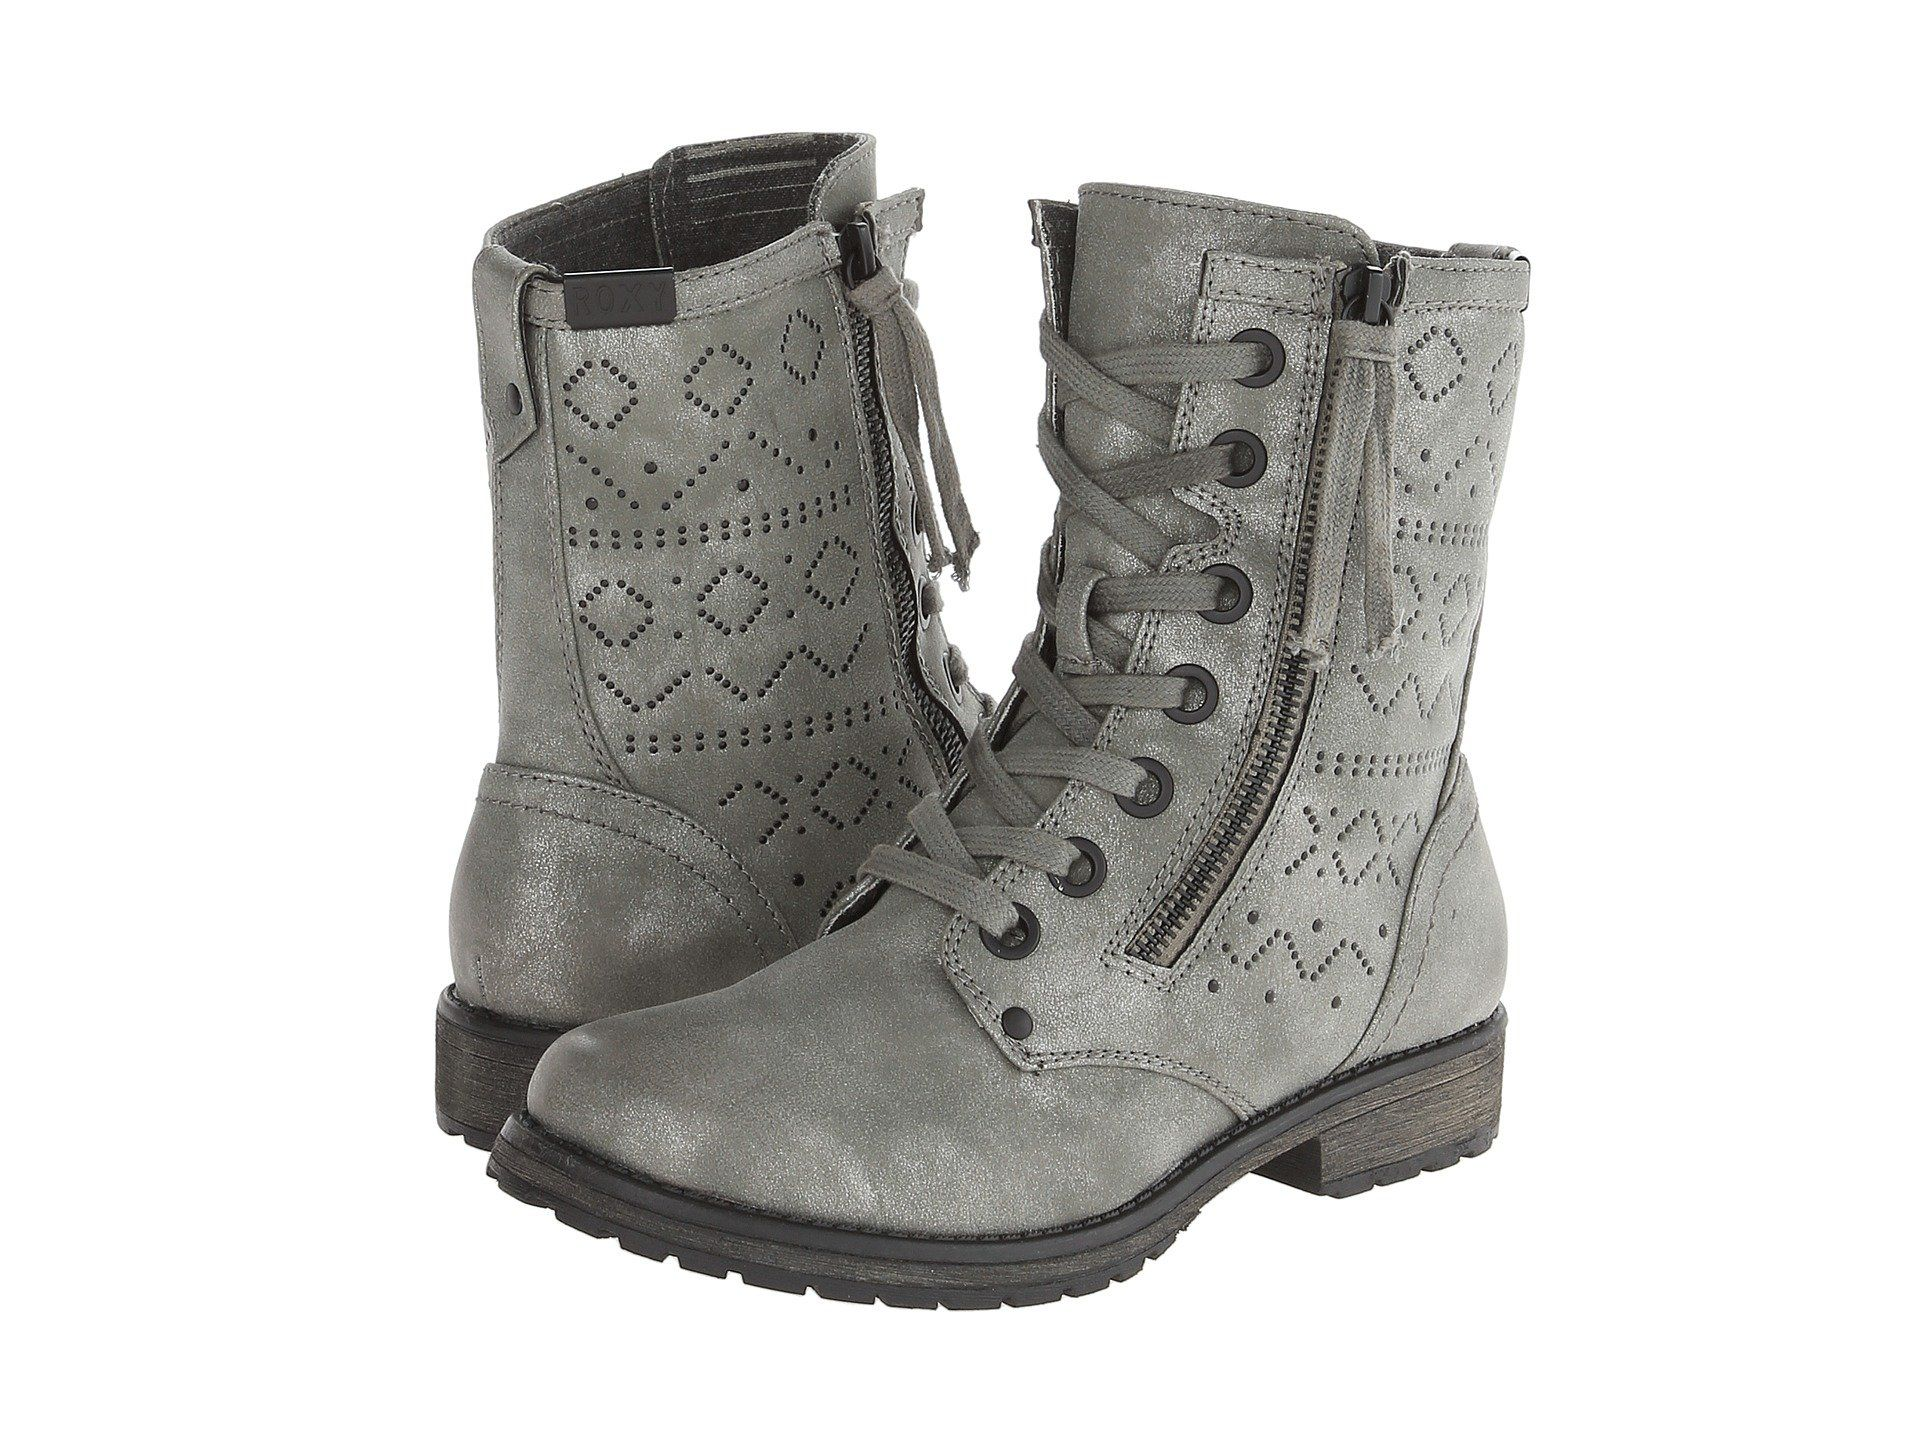 6pm womens winter boots